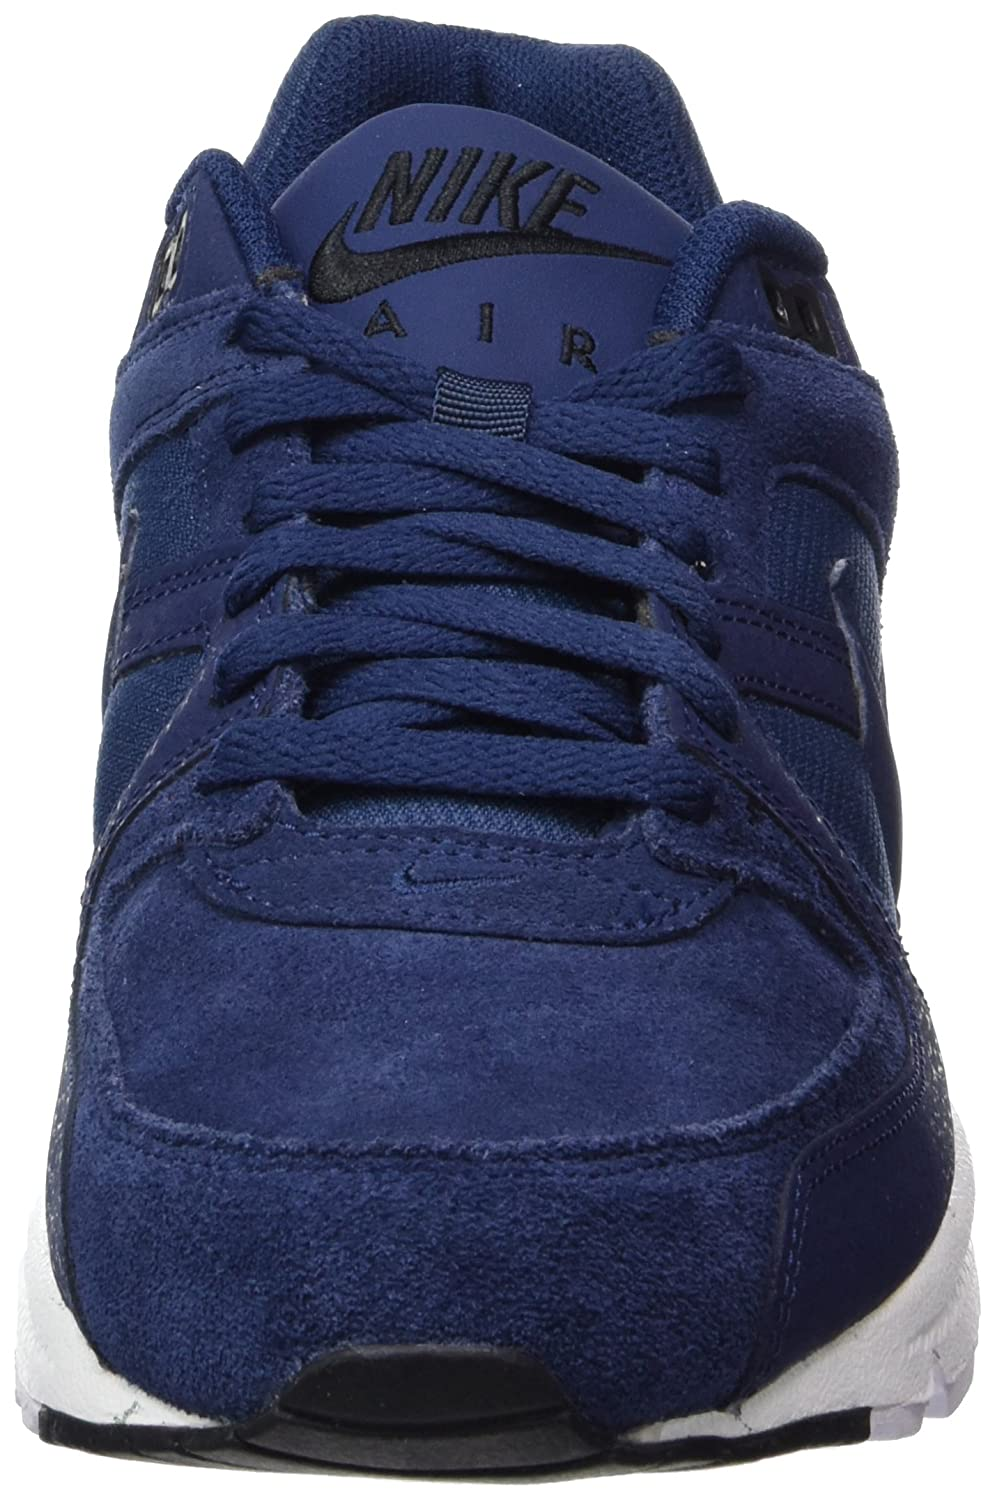 new arrival dc630 a0cbe NIKE Air Max Command PRM, Sneakers Basses Homme